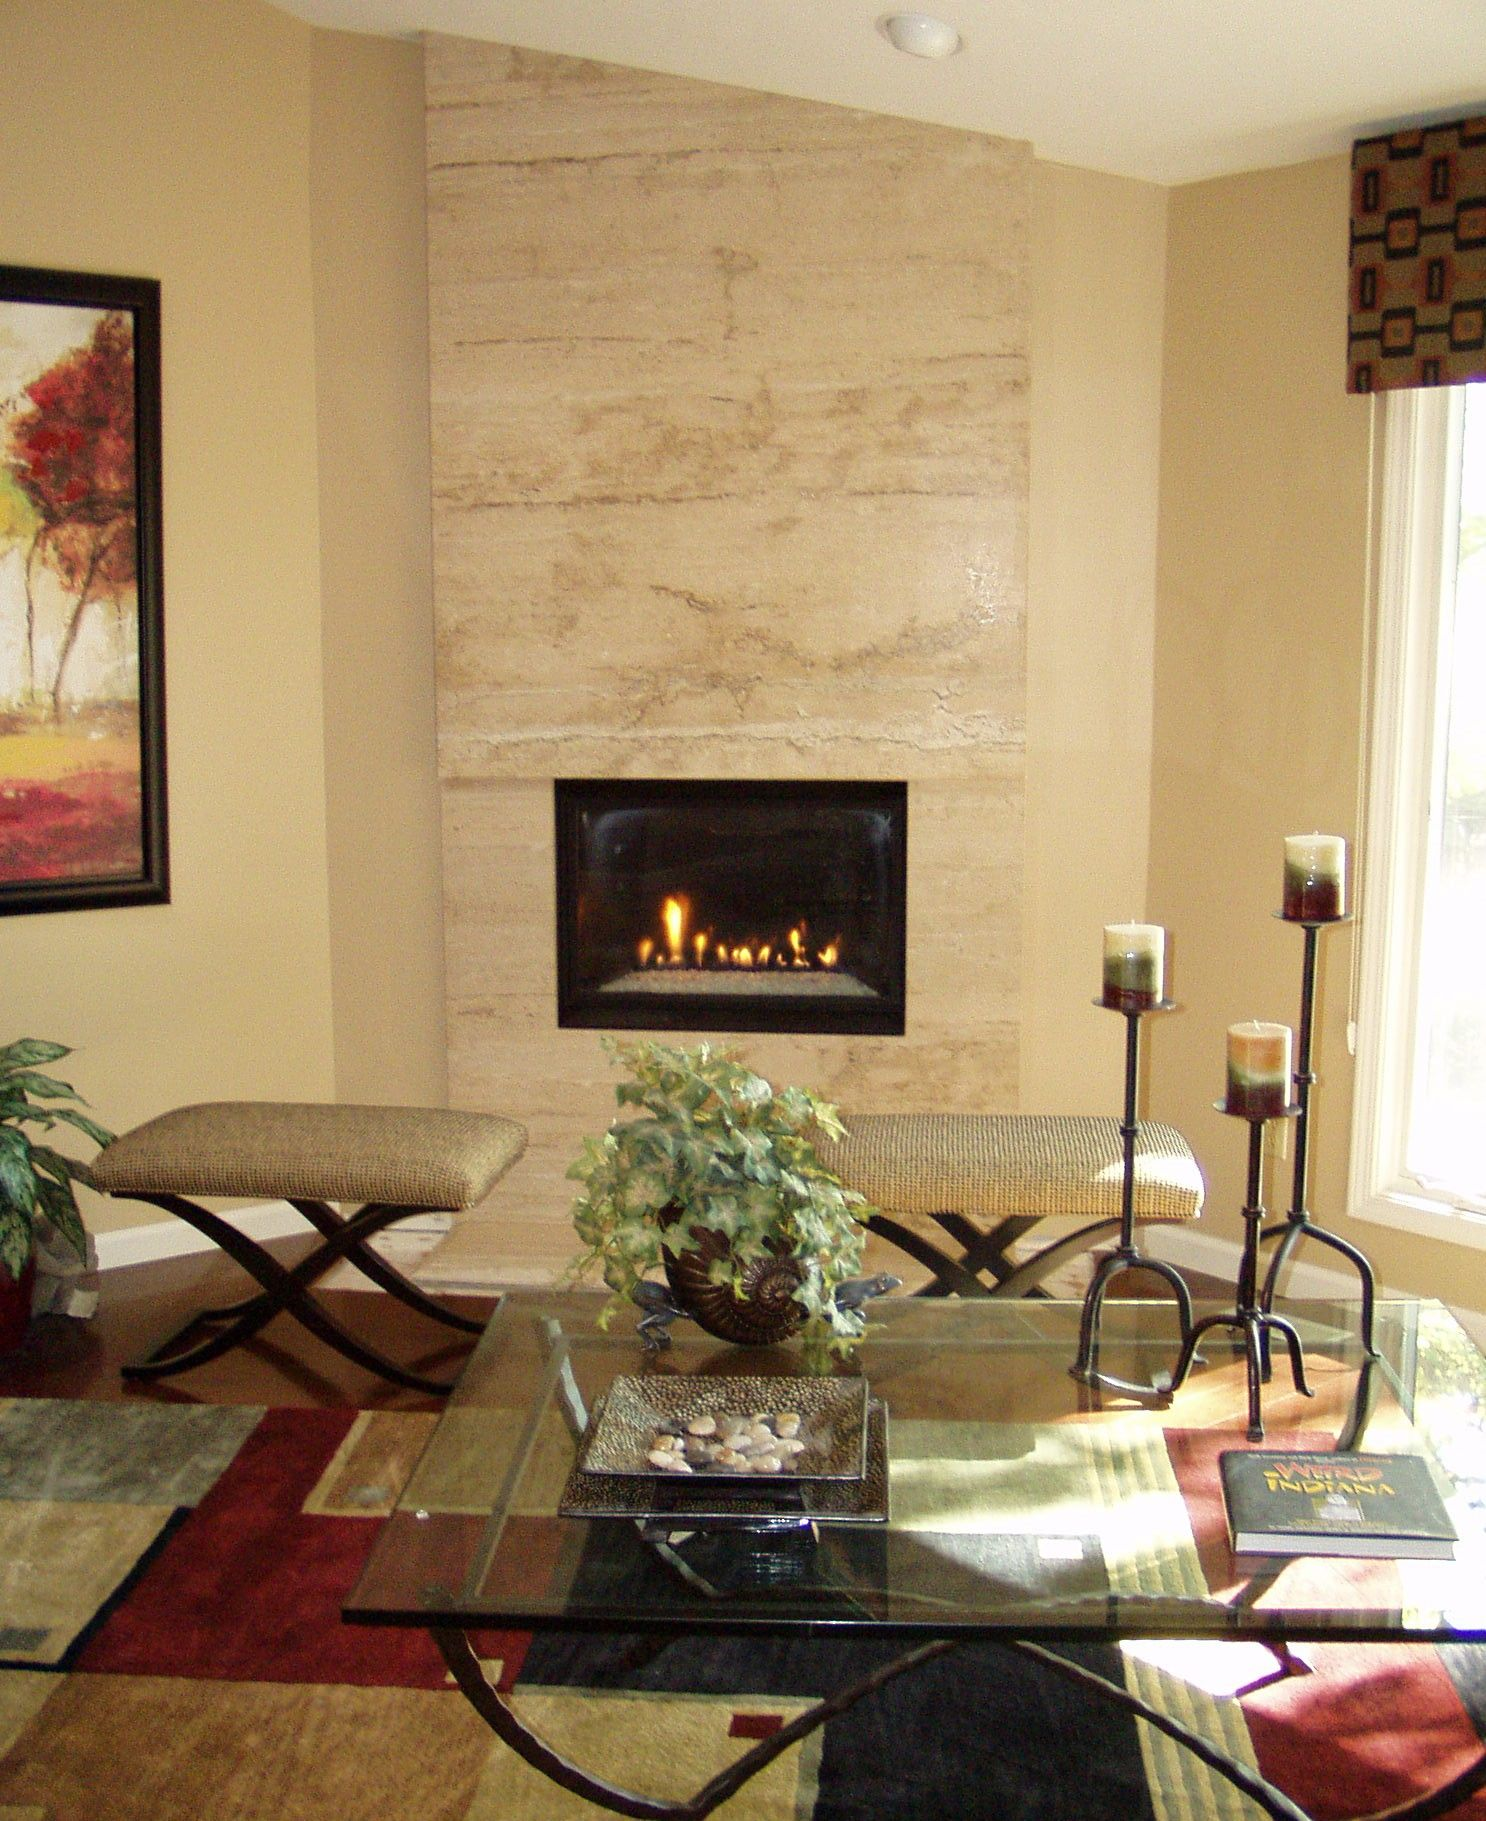 Floor to ceiling travertine fireplace that creates a dramatic focal ...